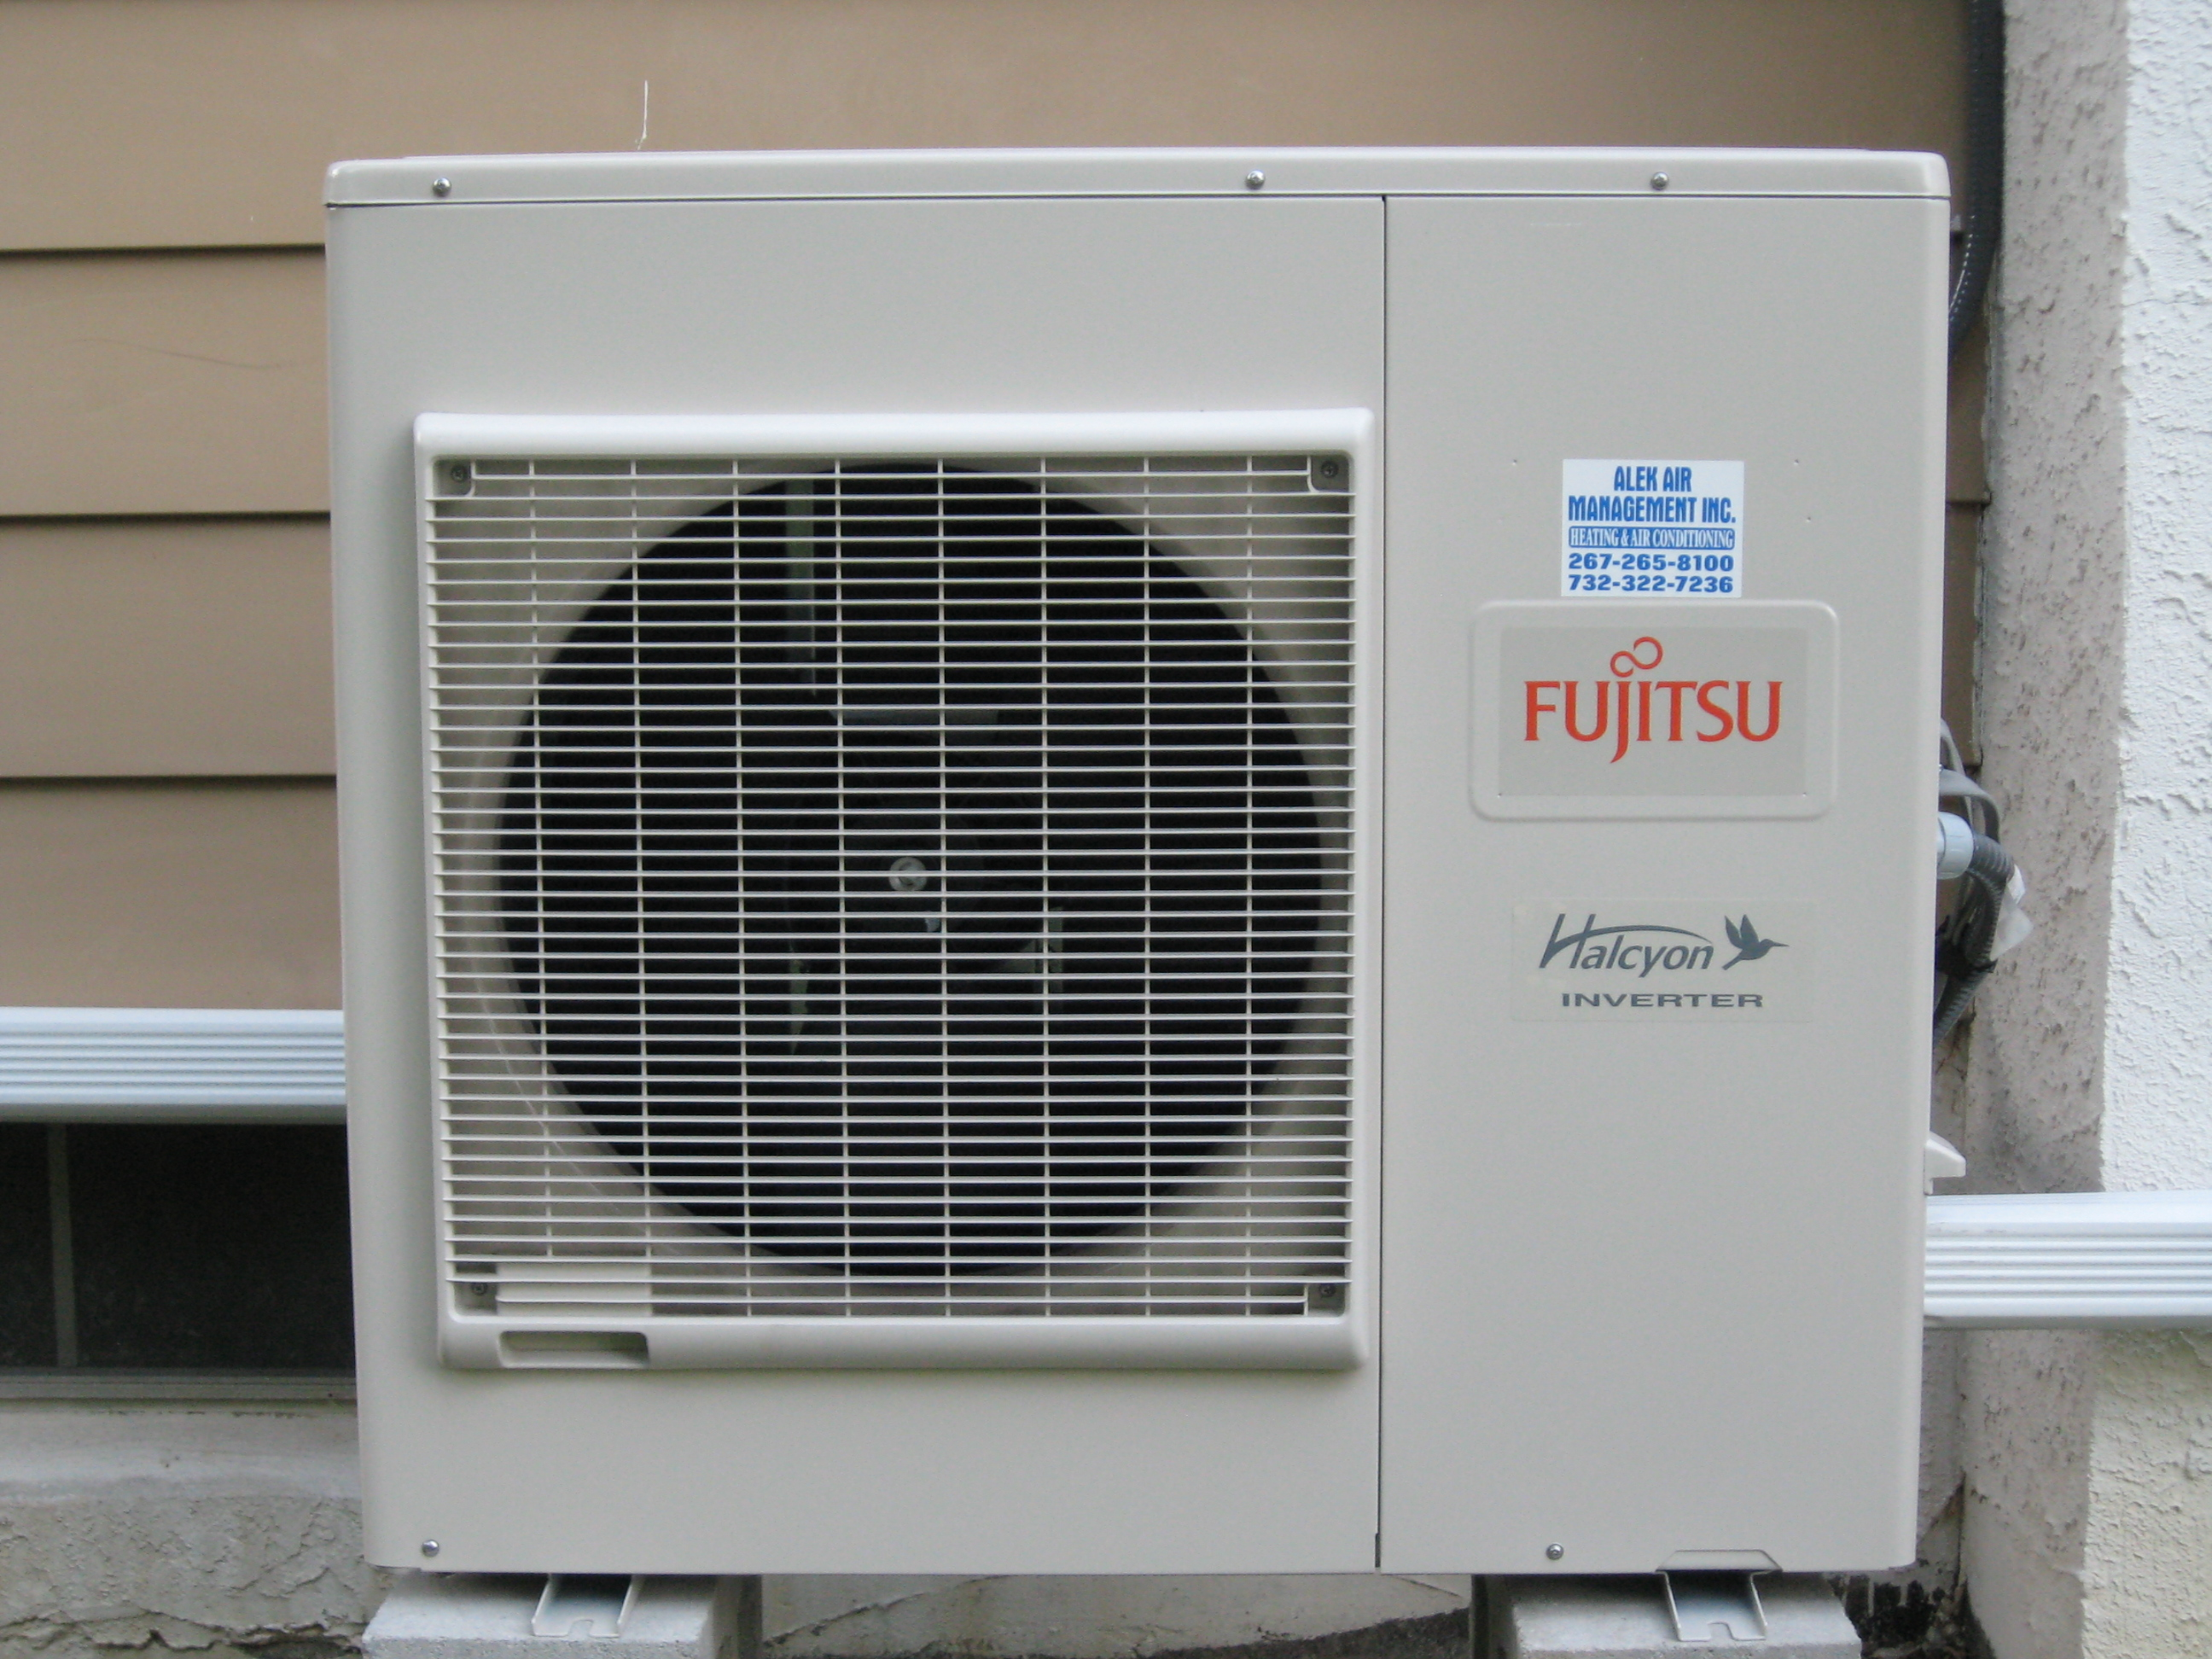 Average cost of new furnace and ac for home - Fujitsu Minisplit Outdoor Unit